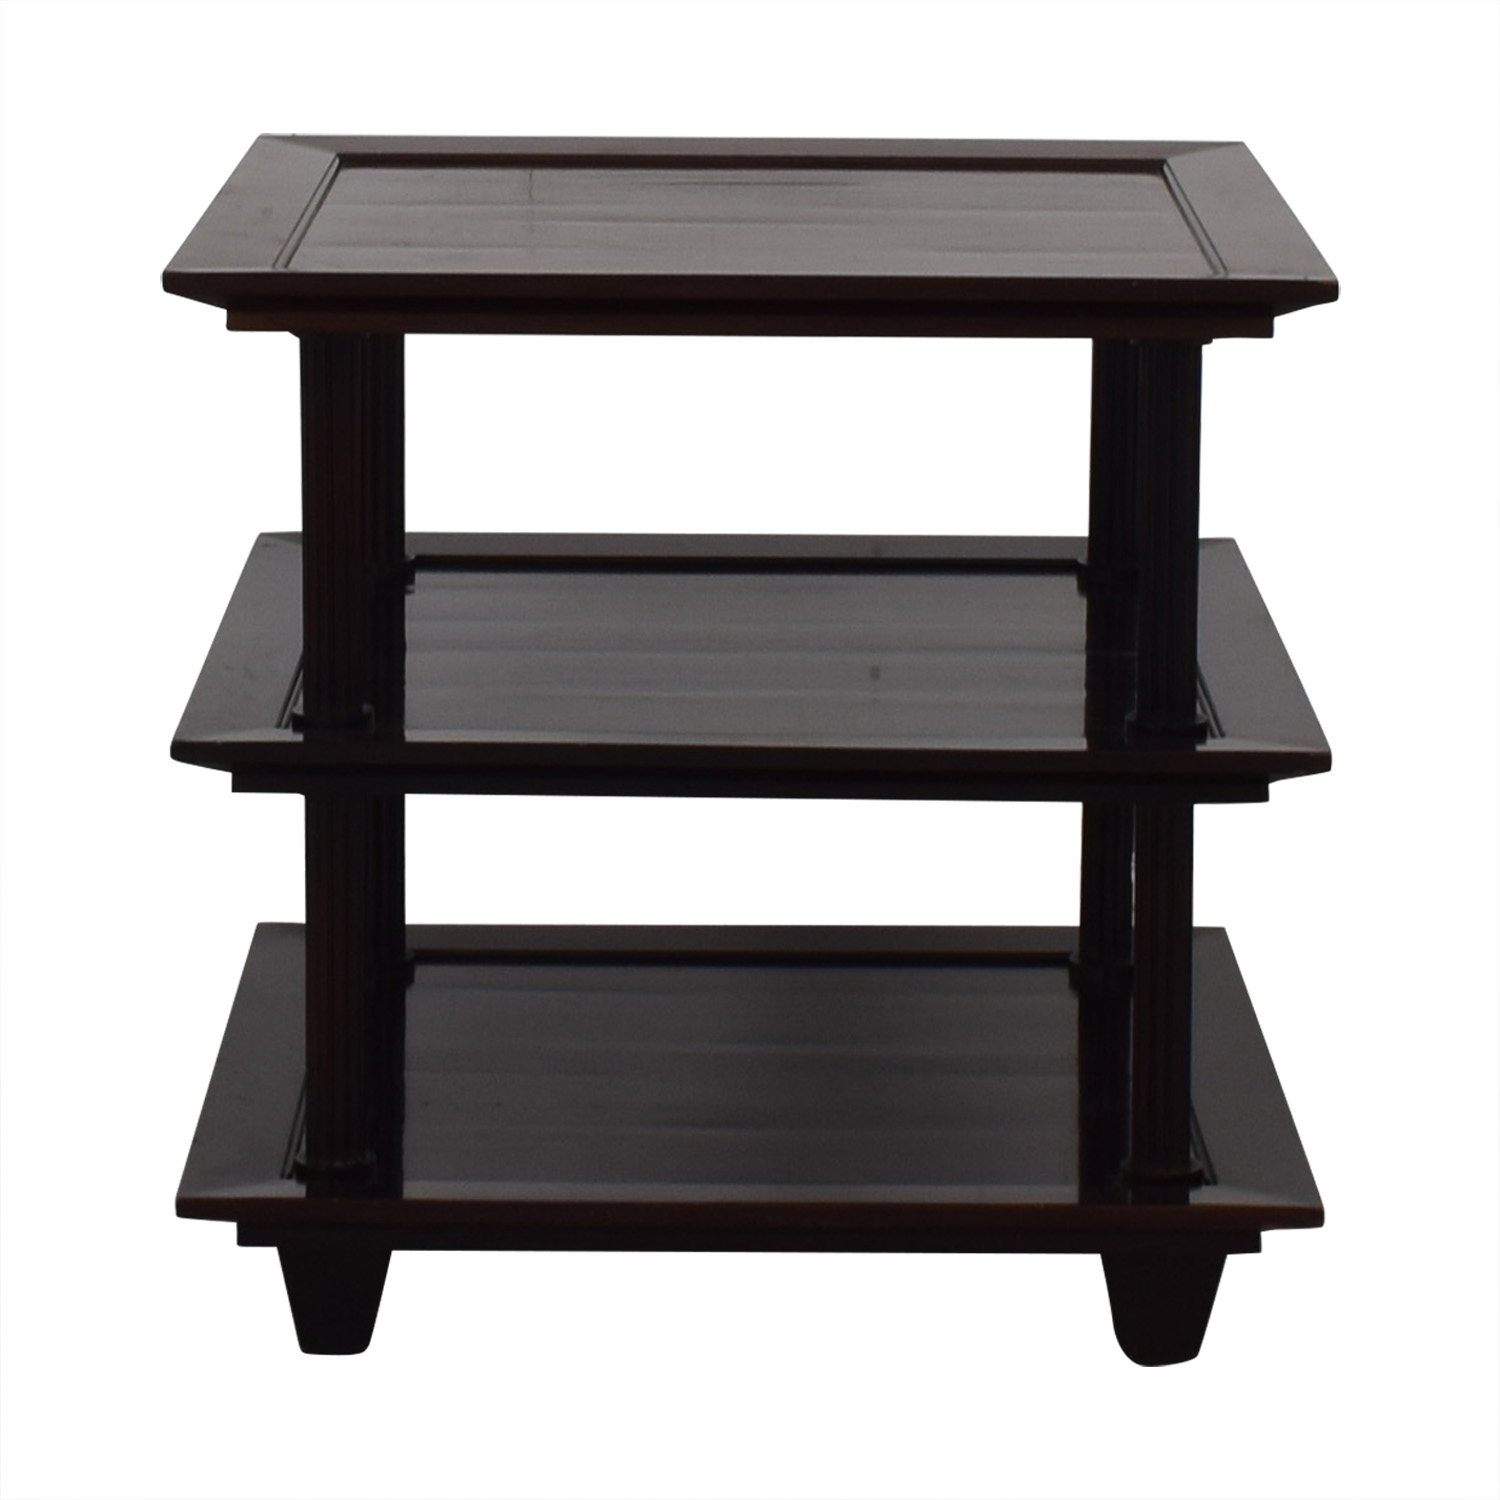 Baker Furniture Baker Furniture by Barbara Barry Three Tiered Accent Table for sale